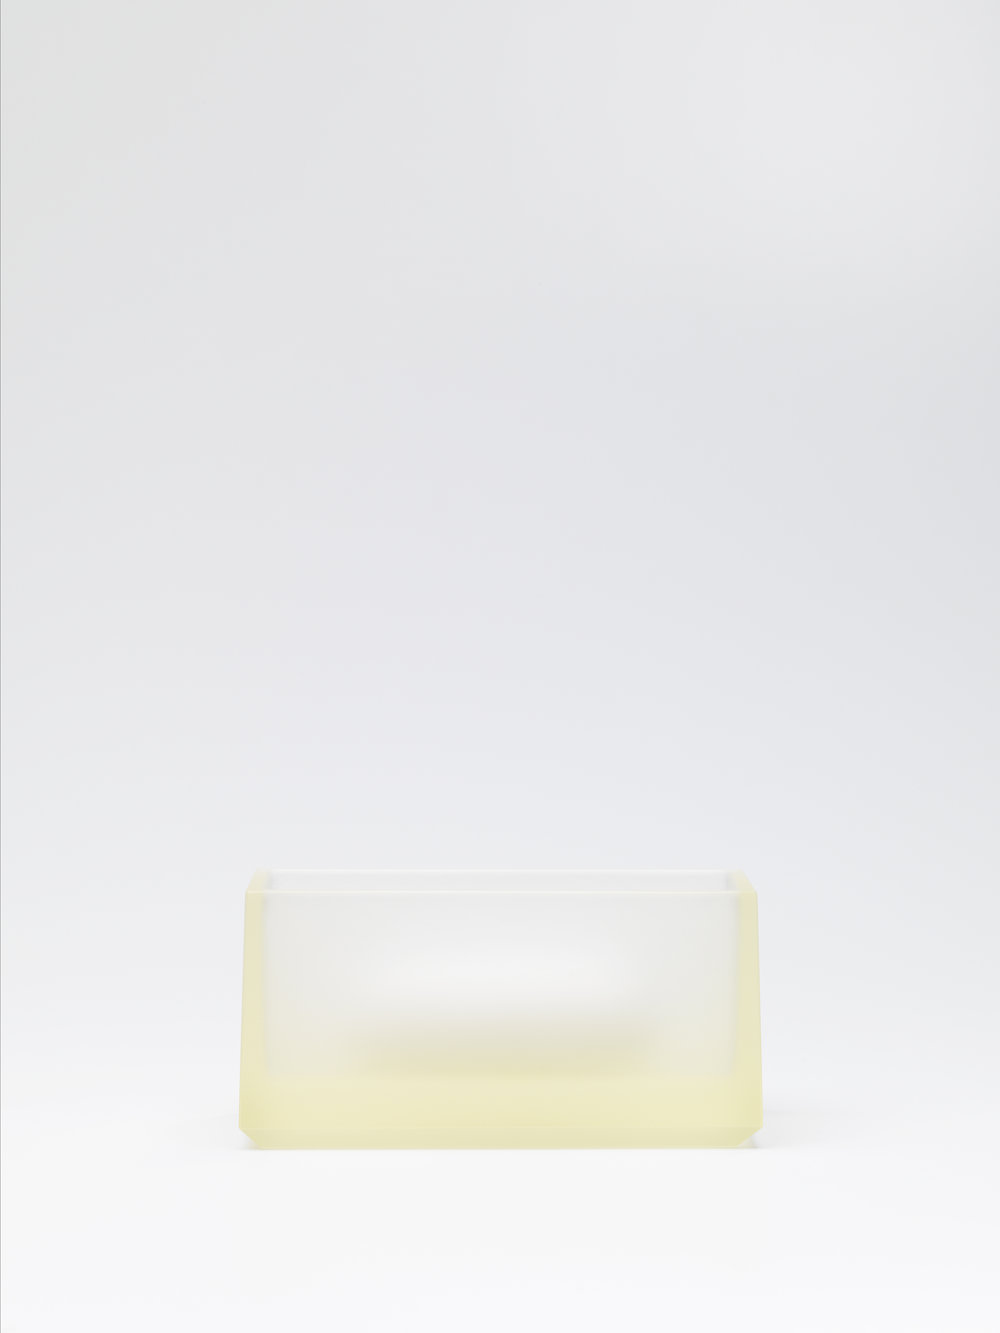 Andrea Walsh   Contained Box  Pale Yellow Glass and Fine Bone China 6cm x 13cm x 6.5cm Photo: Shannon Tofts